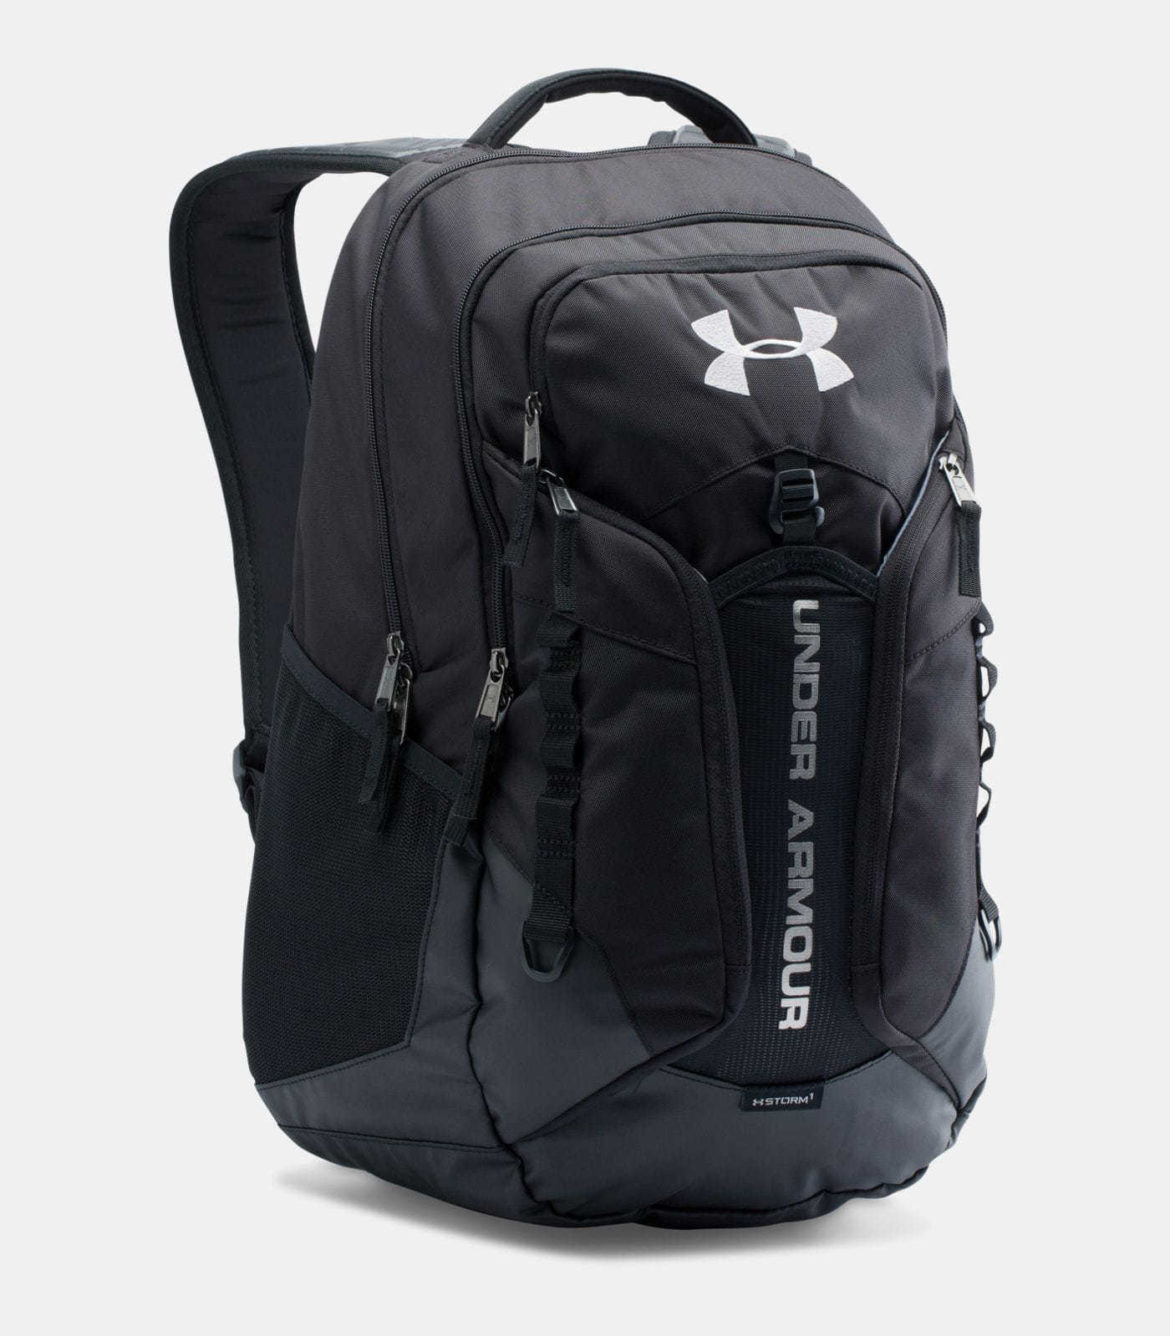 UA Storm Contender Backpack - one of the best laptop backpacks for college students.